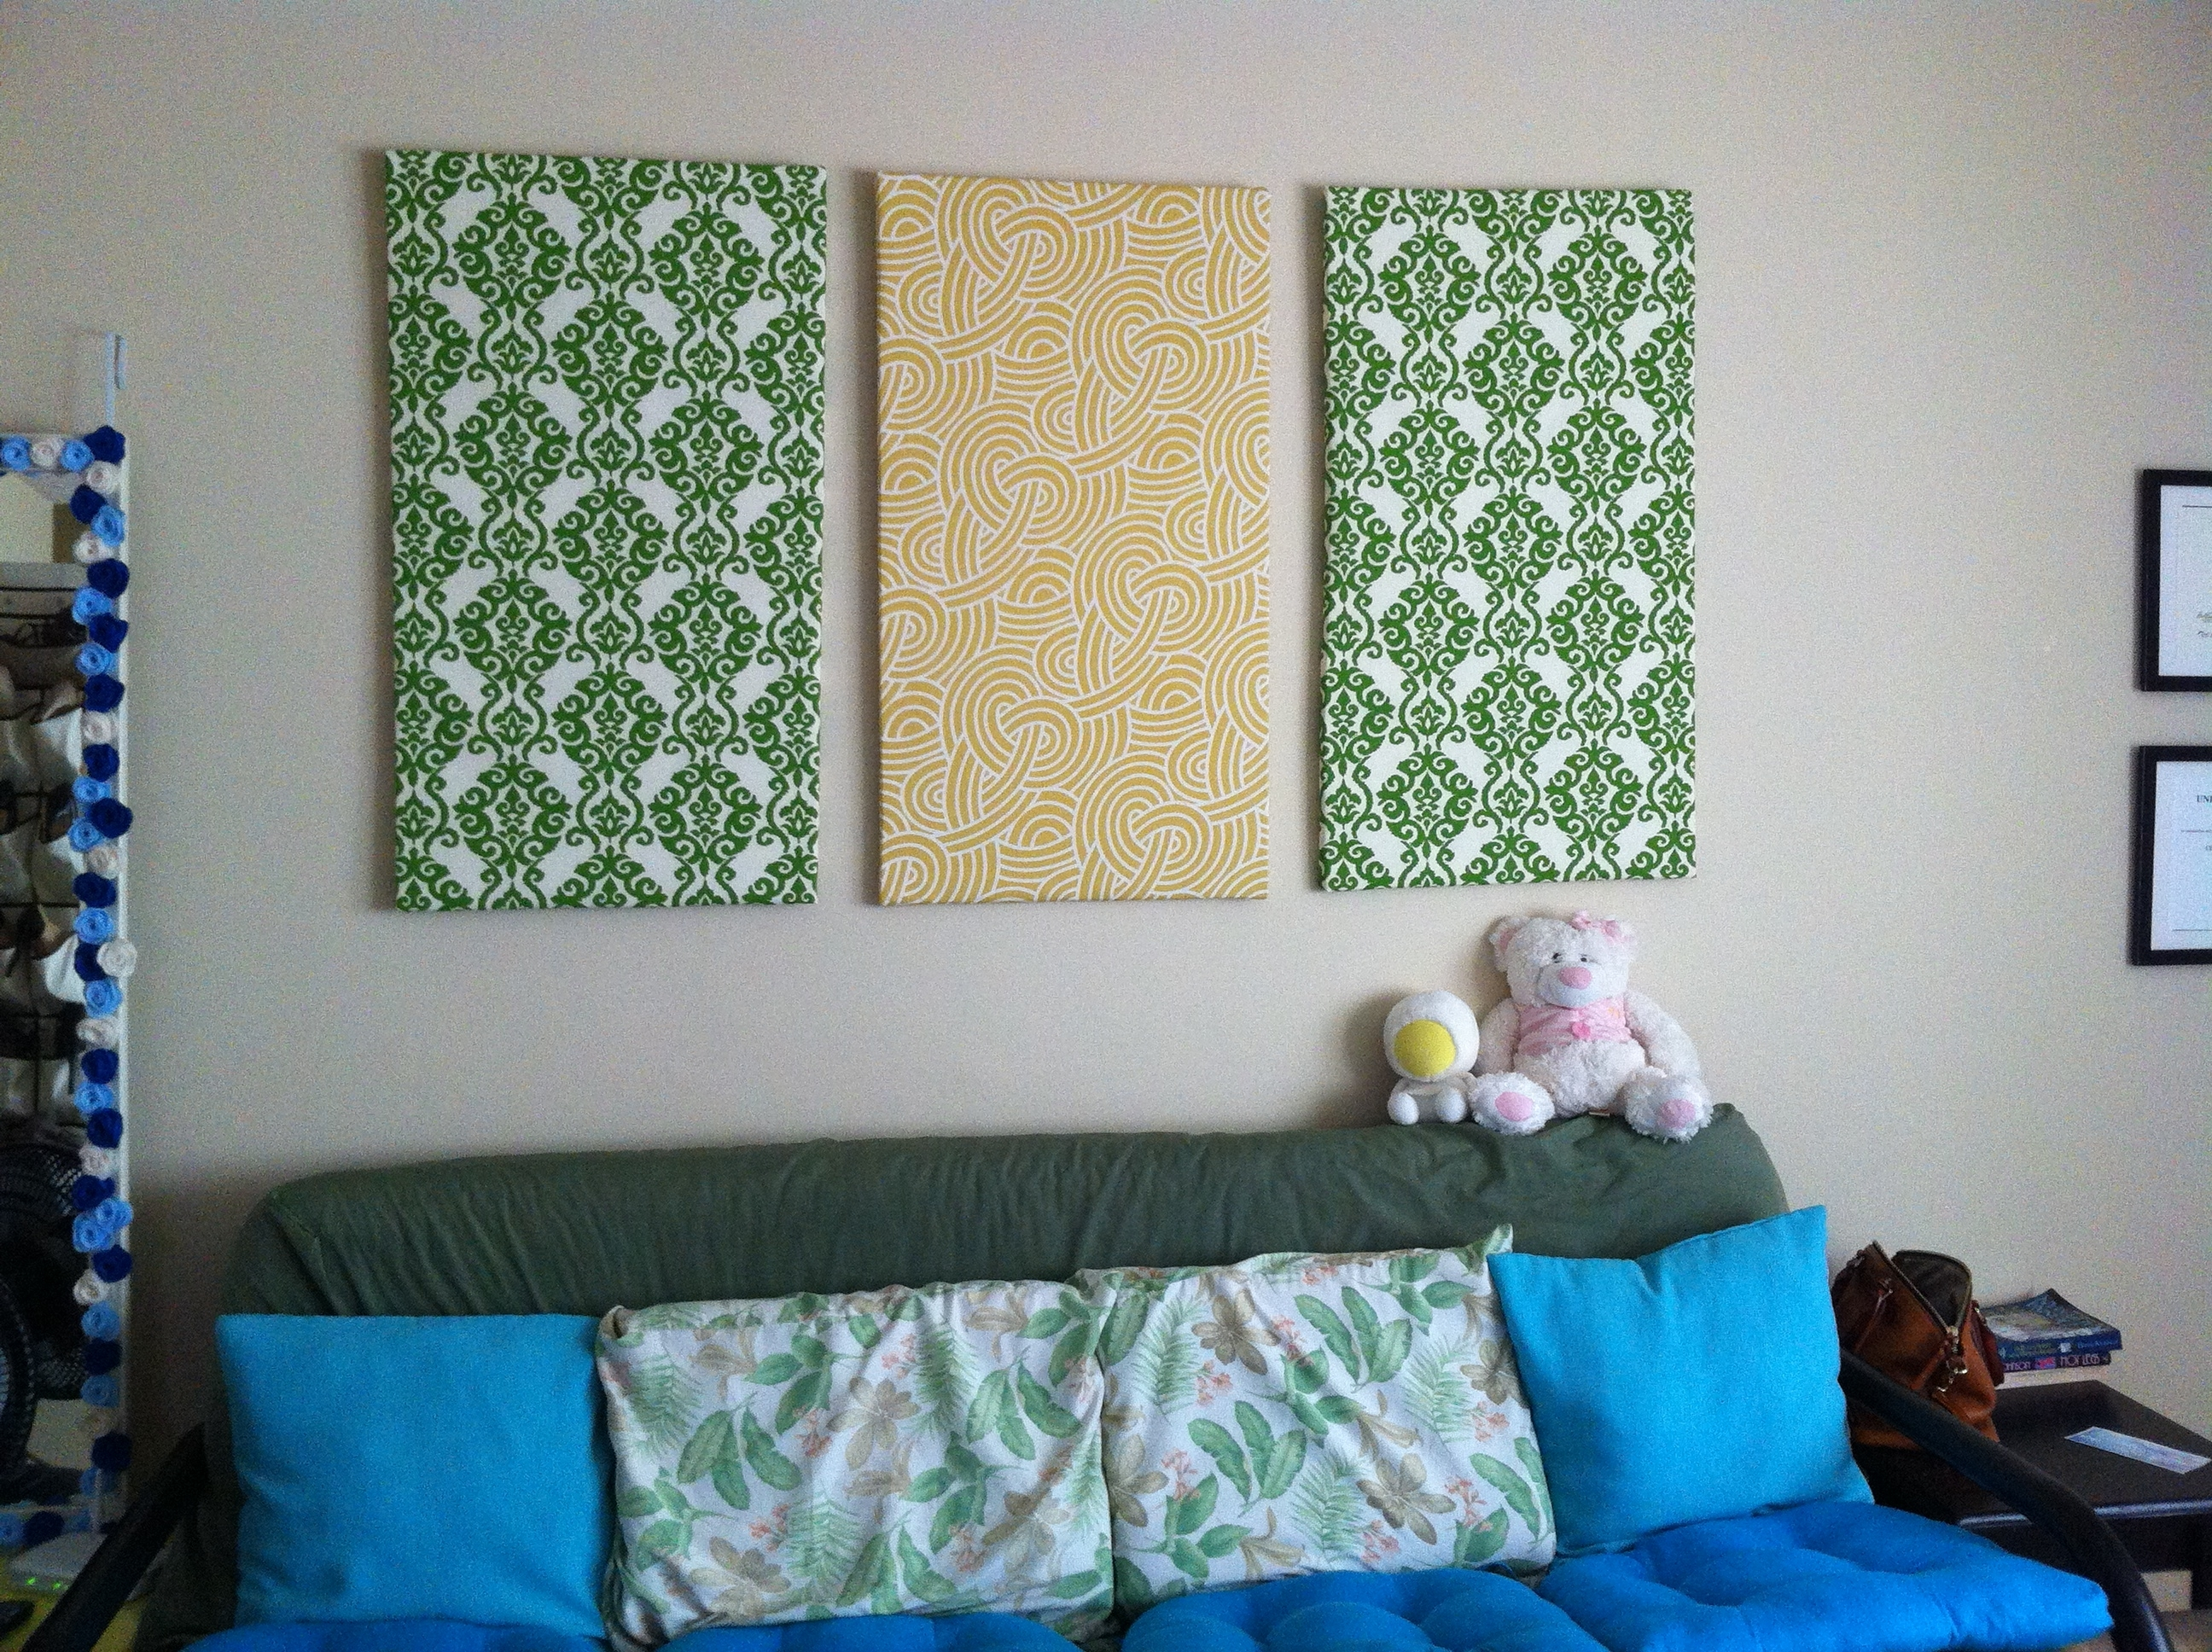 Art: Fabric Wall Art Diy Within Most Recently Released Diy Large Fabric Wall Art (View 3 of 15)